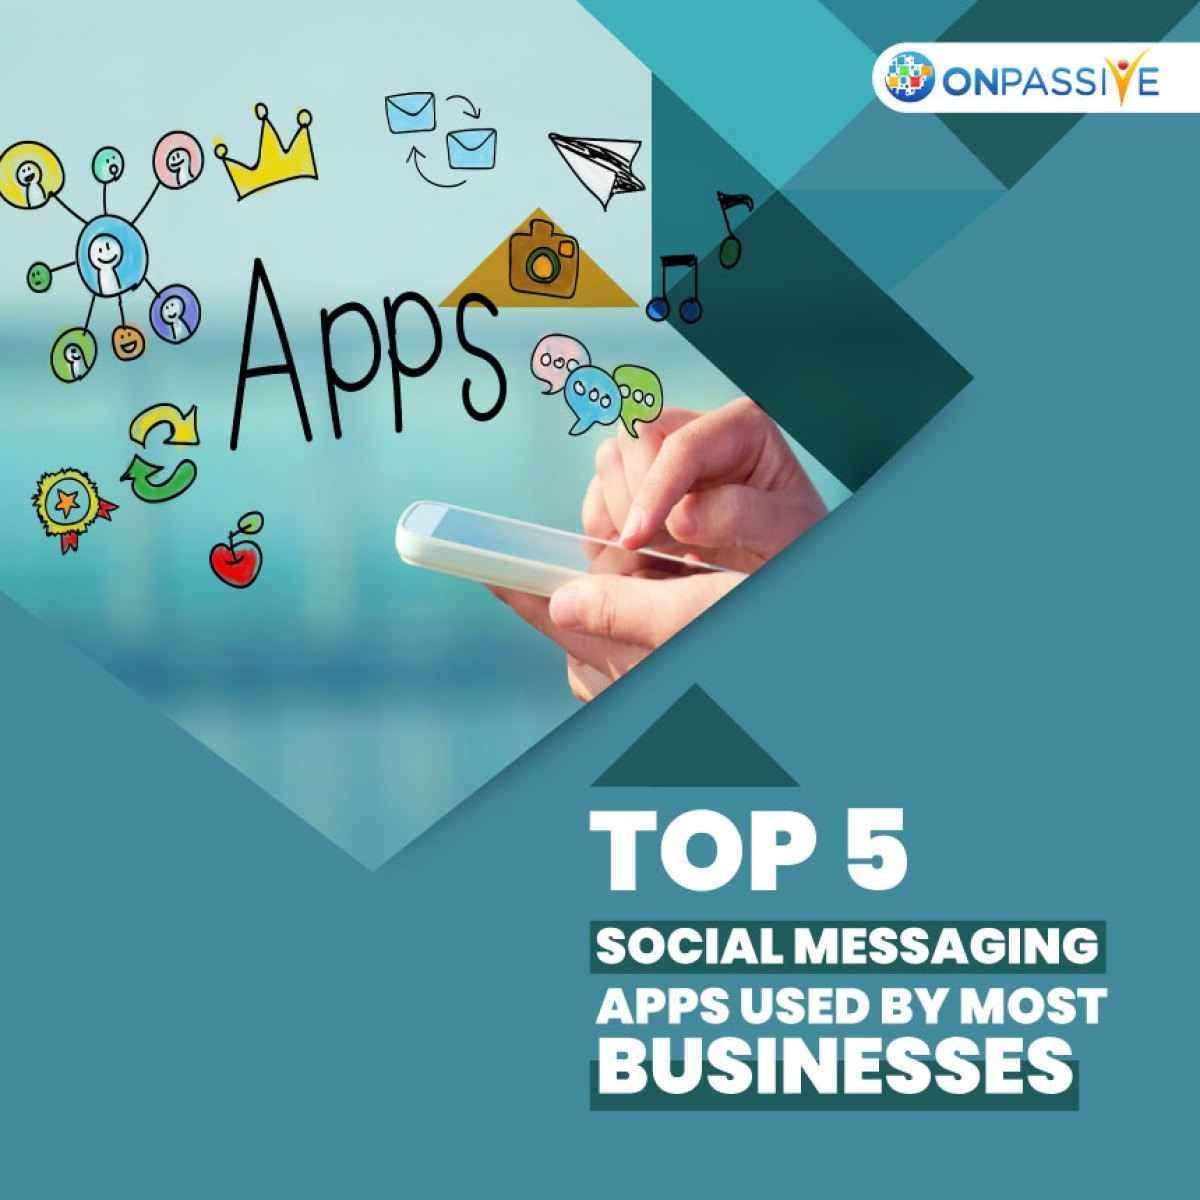 The development and utilization of social messaging apps have enabled businesses to engage more with their customers. The messaging apps have gained immense popularity over the past few years as billions of people have access to them and utilize them to stay in touch with others.